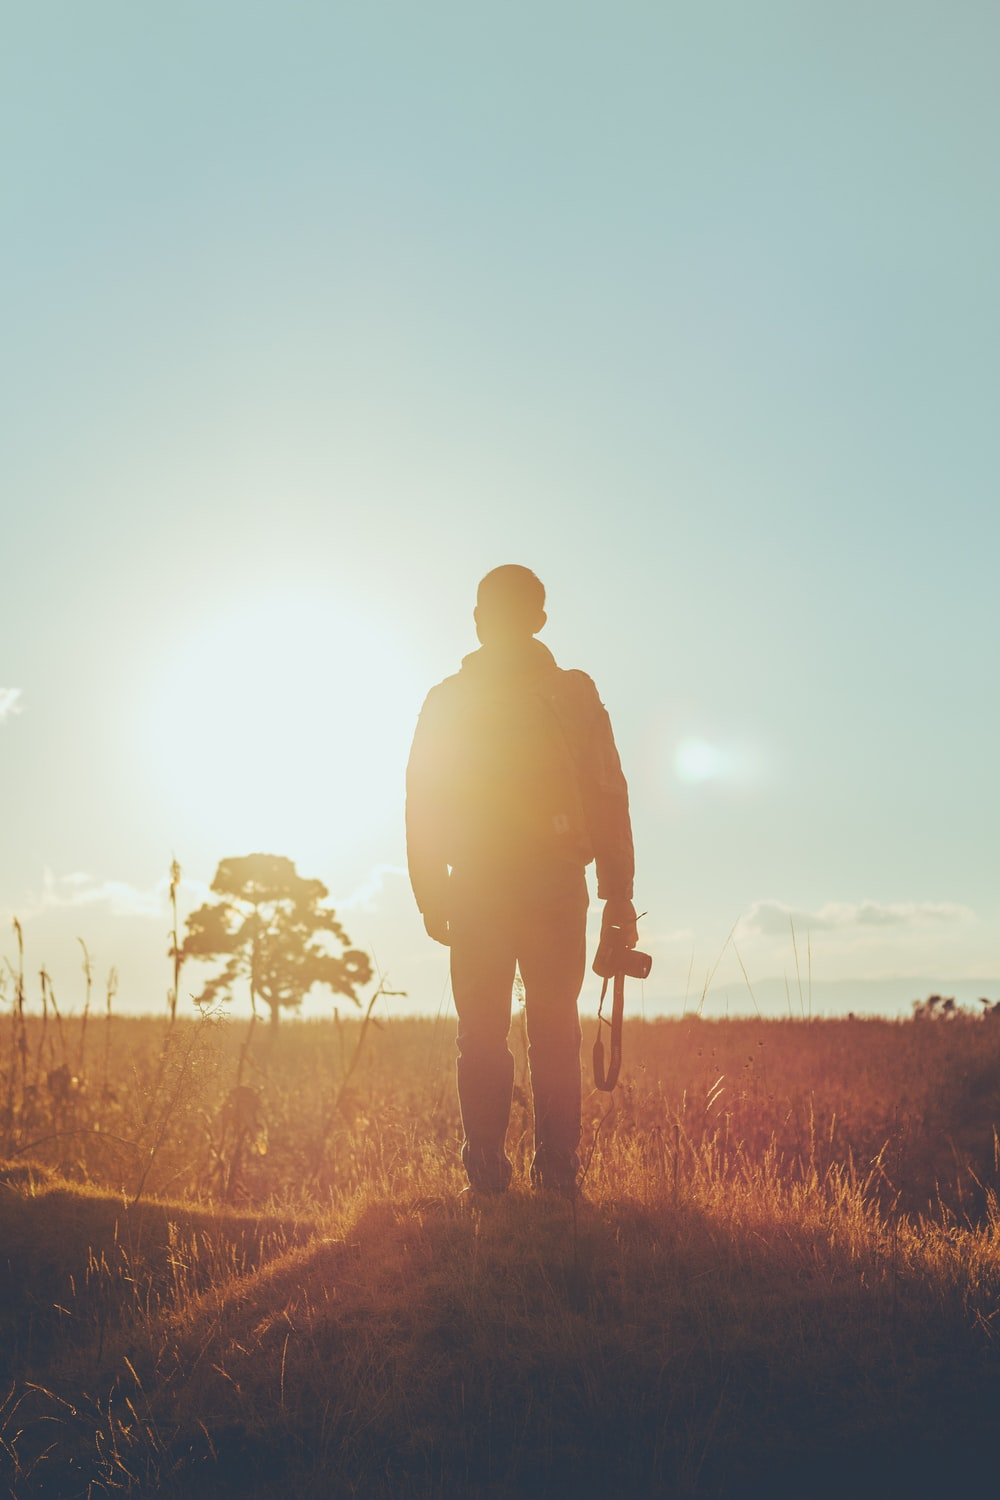 man standing on dried grass holding camera during golden hour